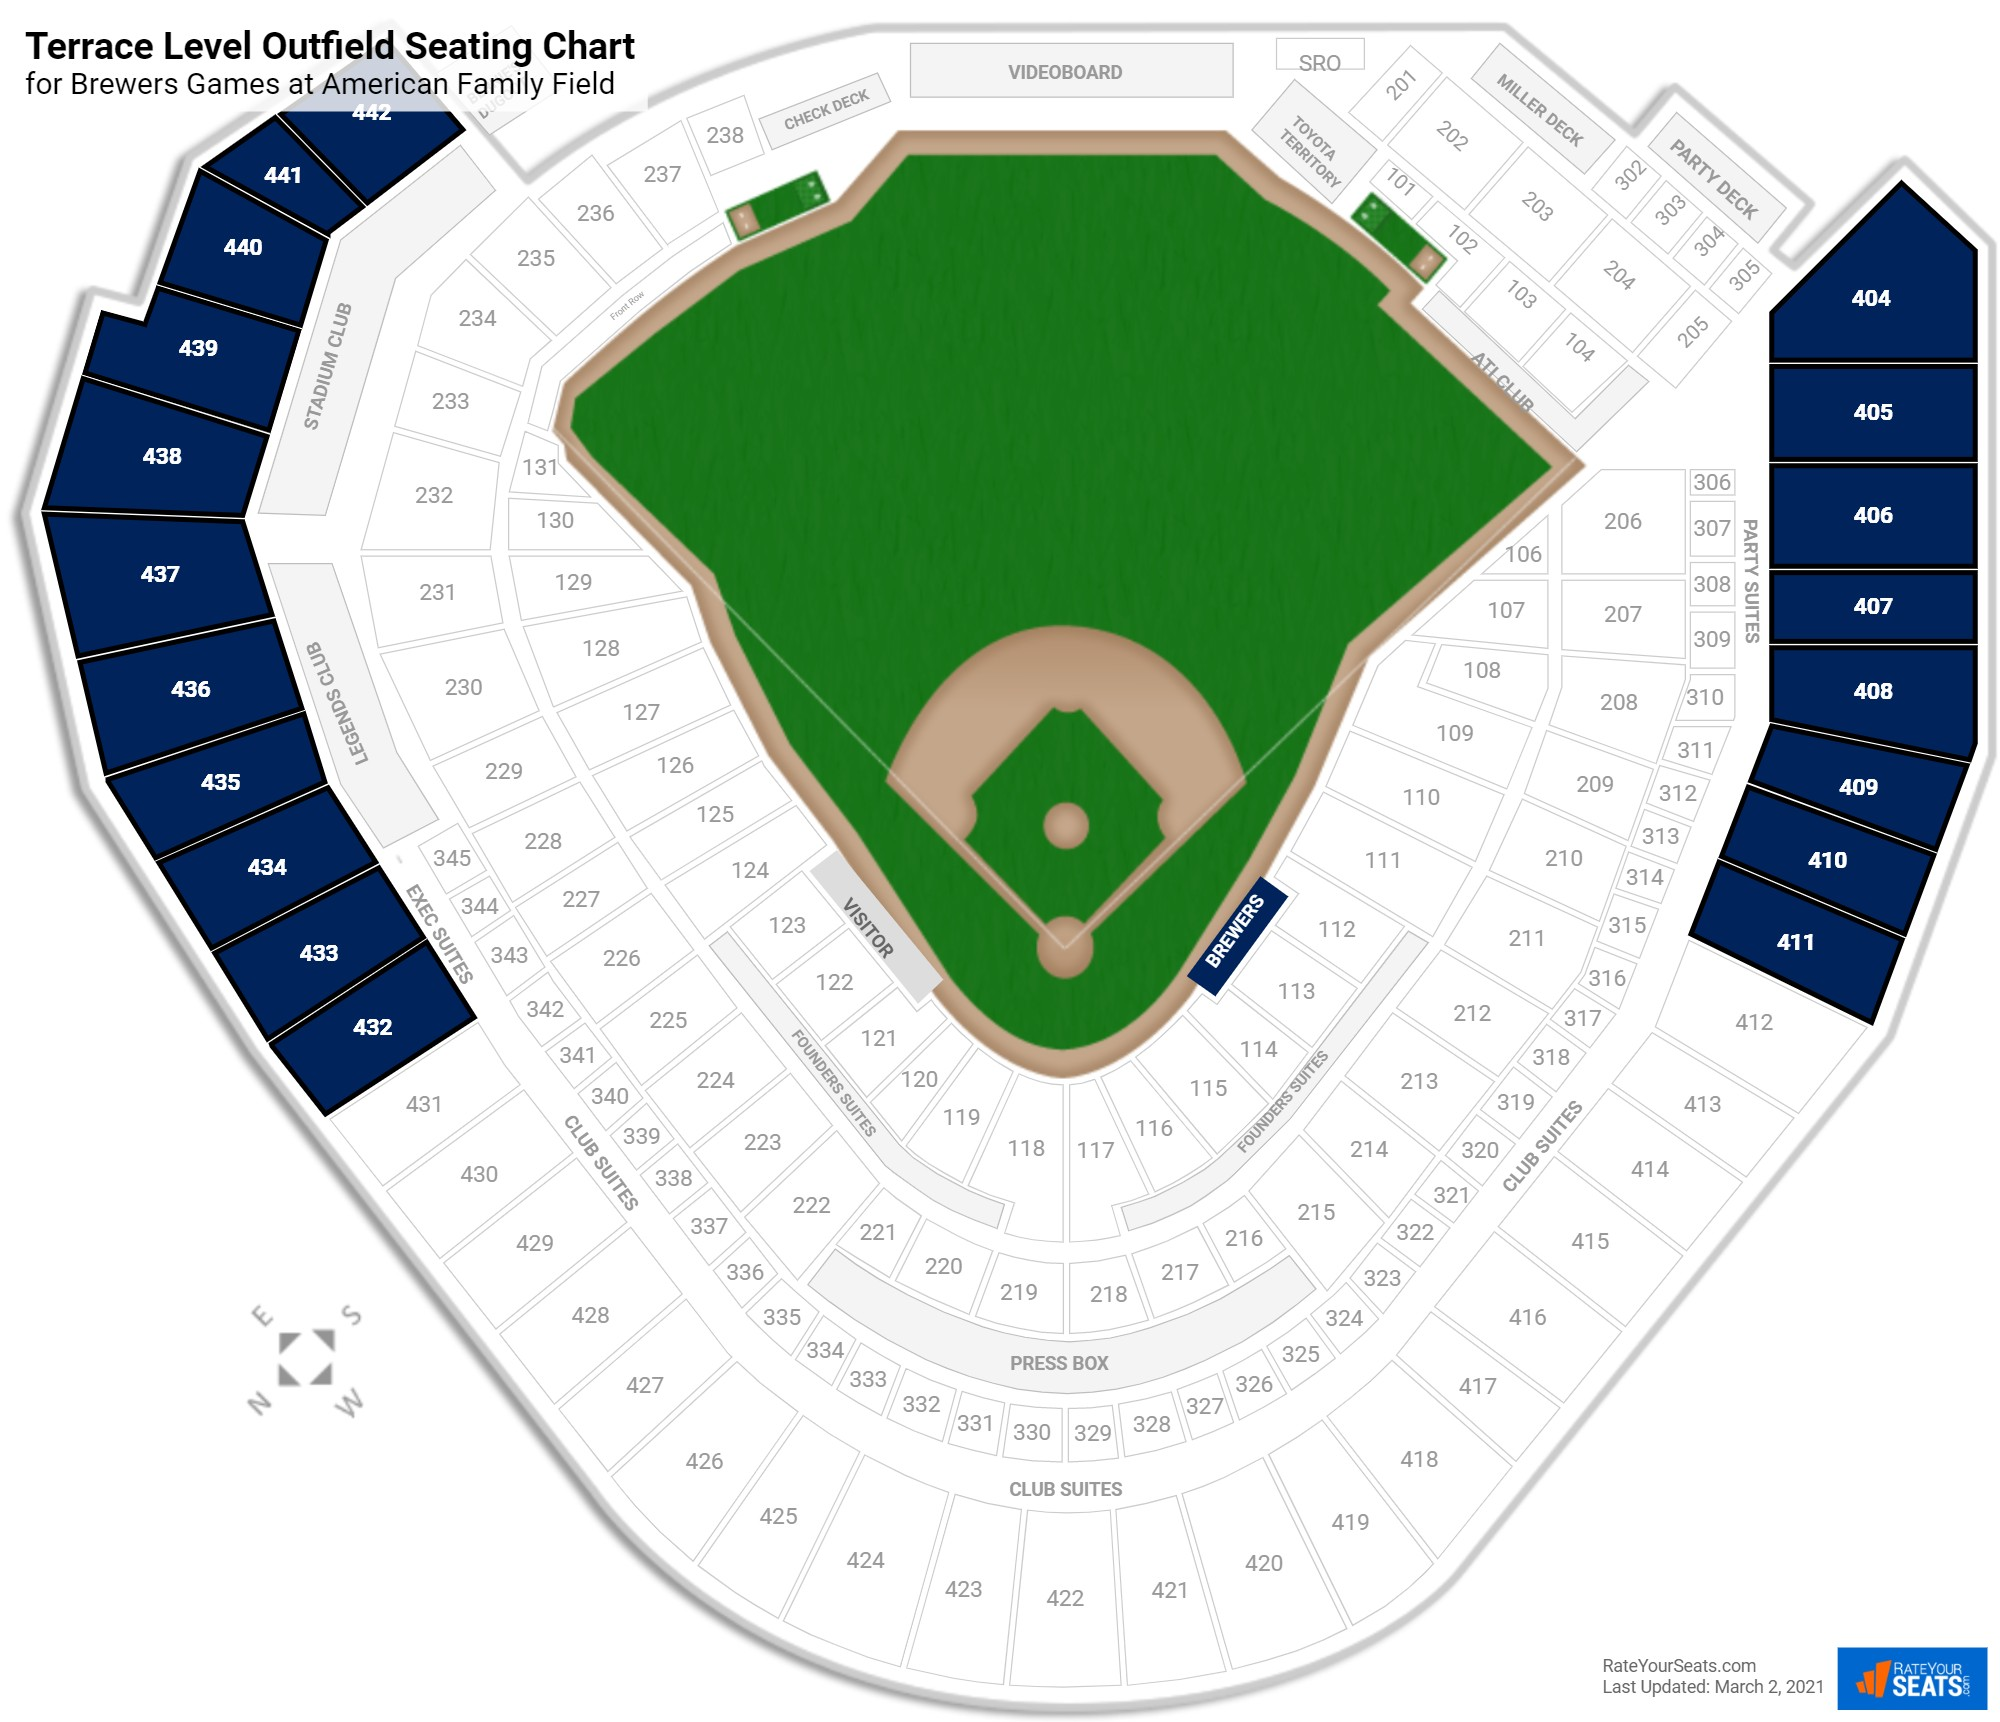 Miller Park Terrace Level Outfield seating chart